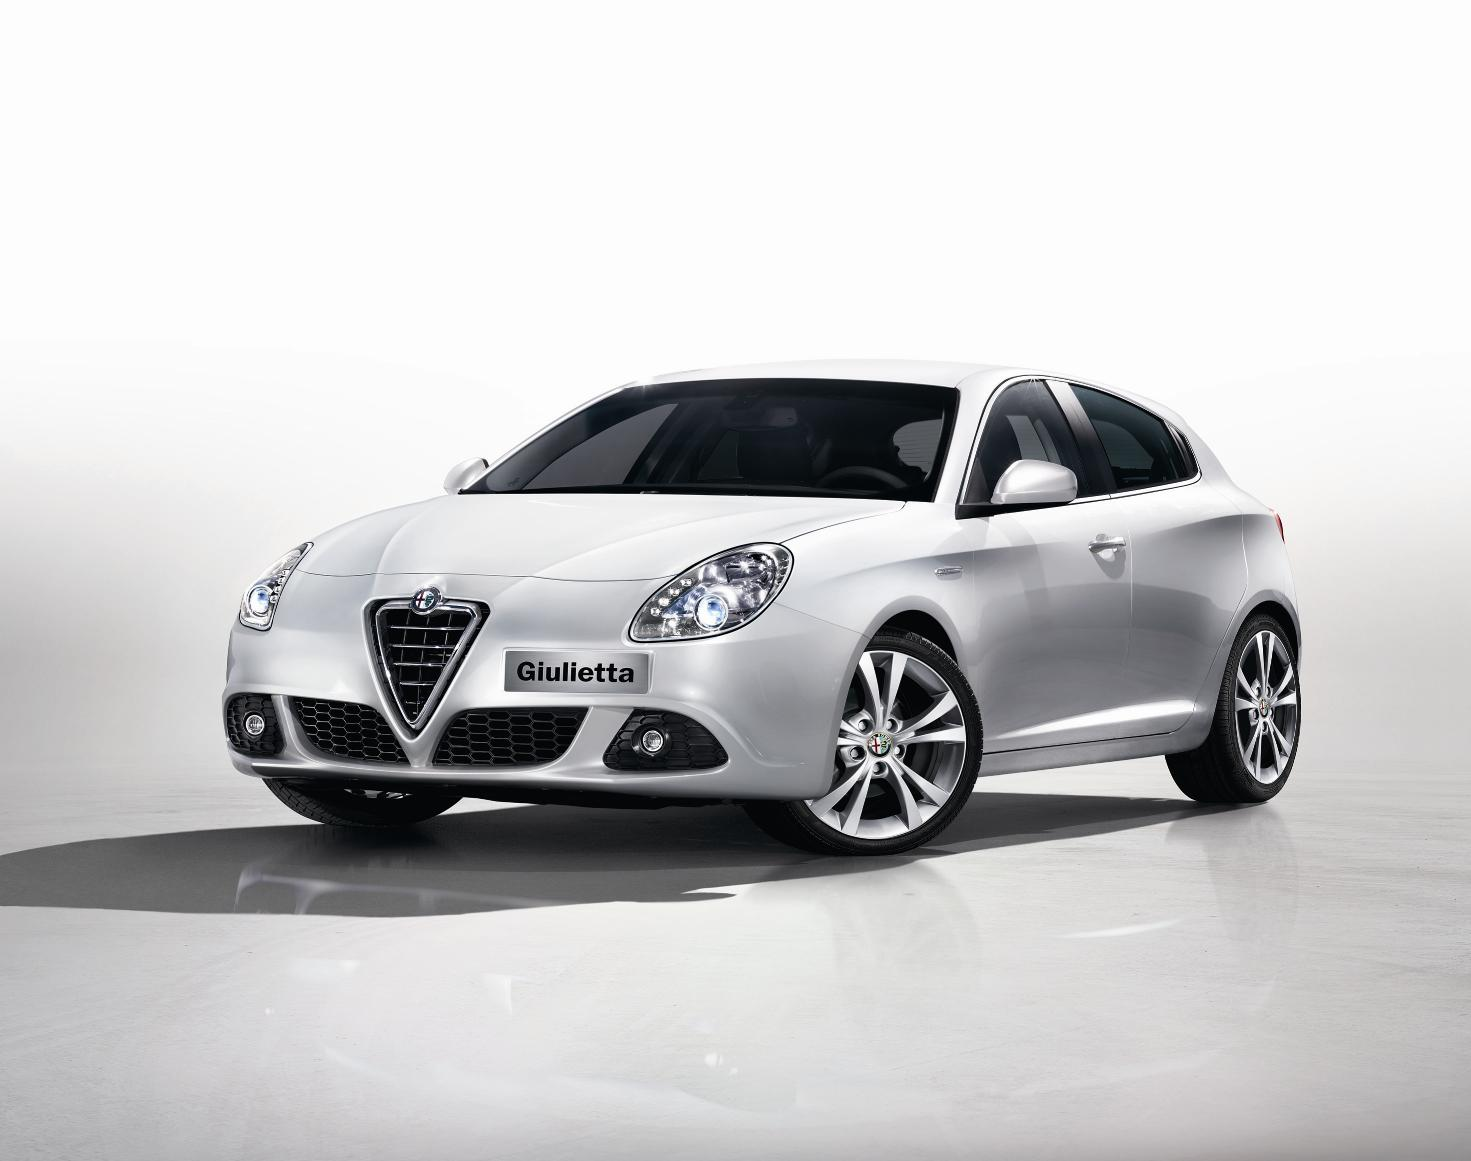 review 2012 alfa romeo giulietta jtd review and first drive. Black Bedroom Furniture Sets. Home Design Ideas